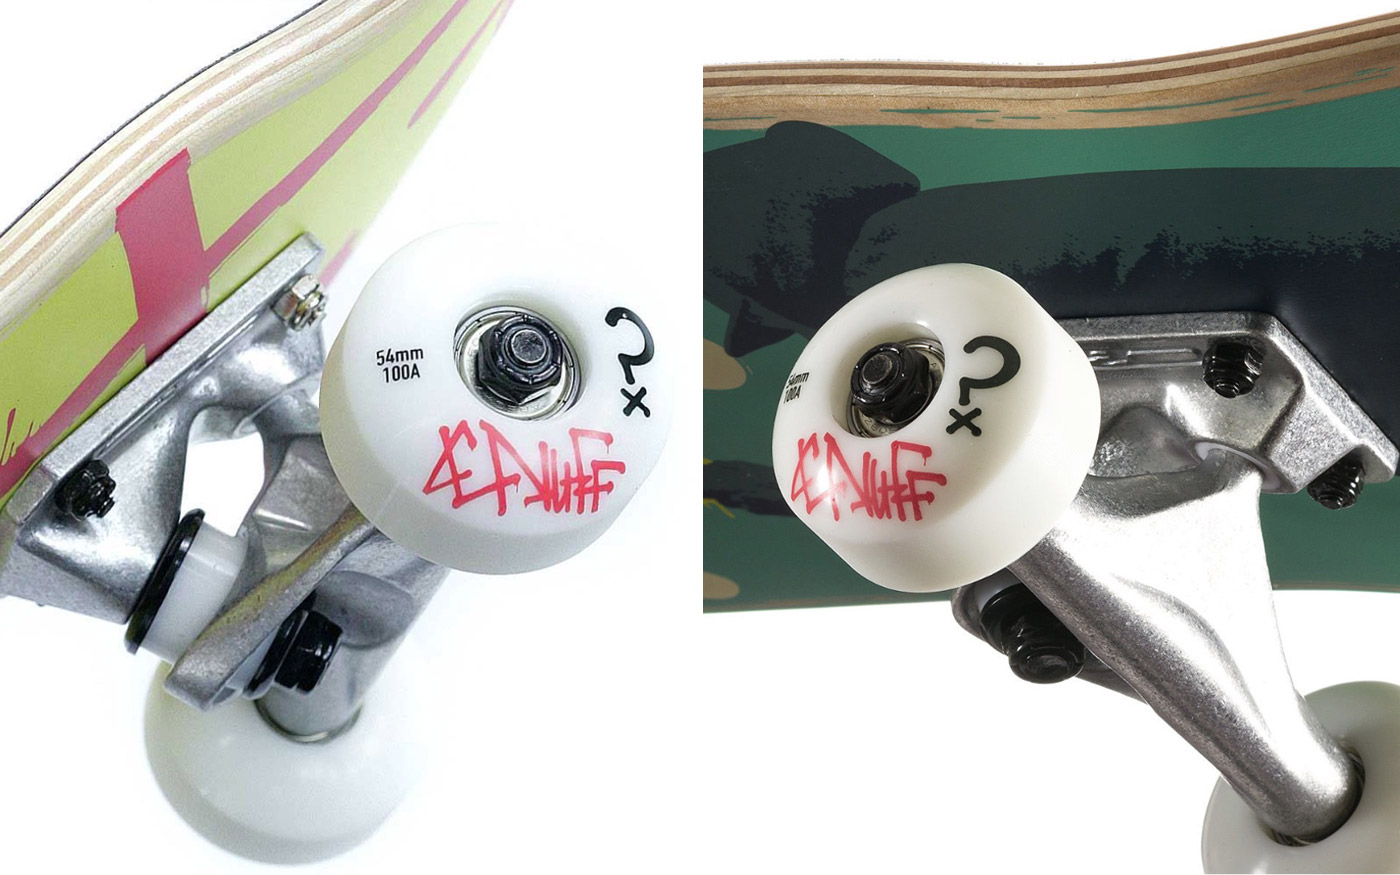 ENUFF SKATEBOARD RICKY ALSO COLLAB SKATEBOARD DESIGNS